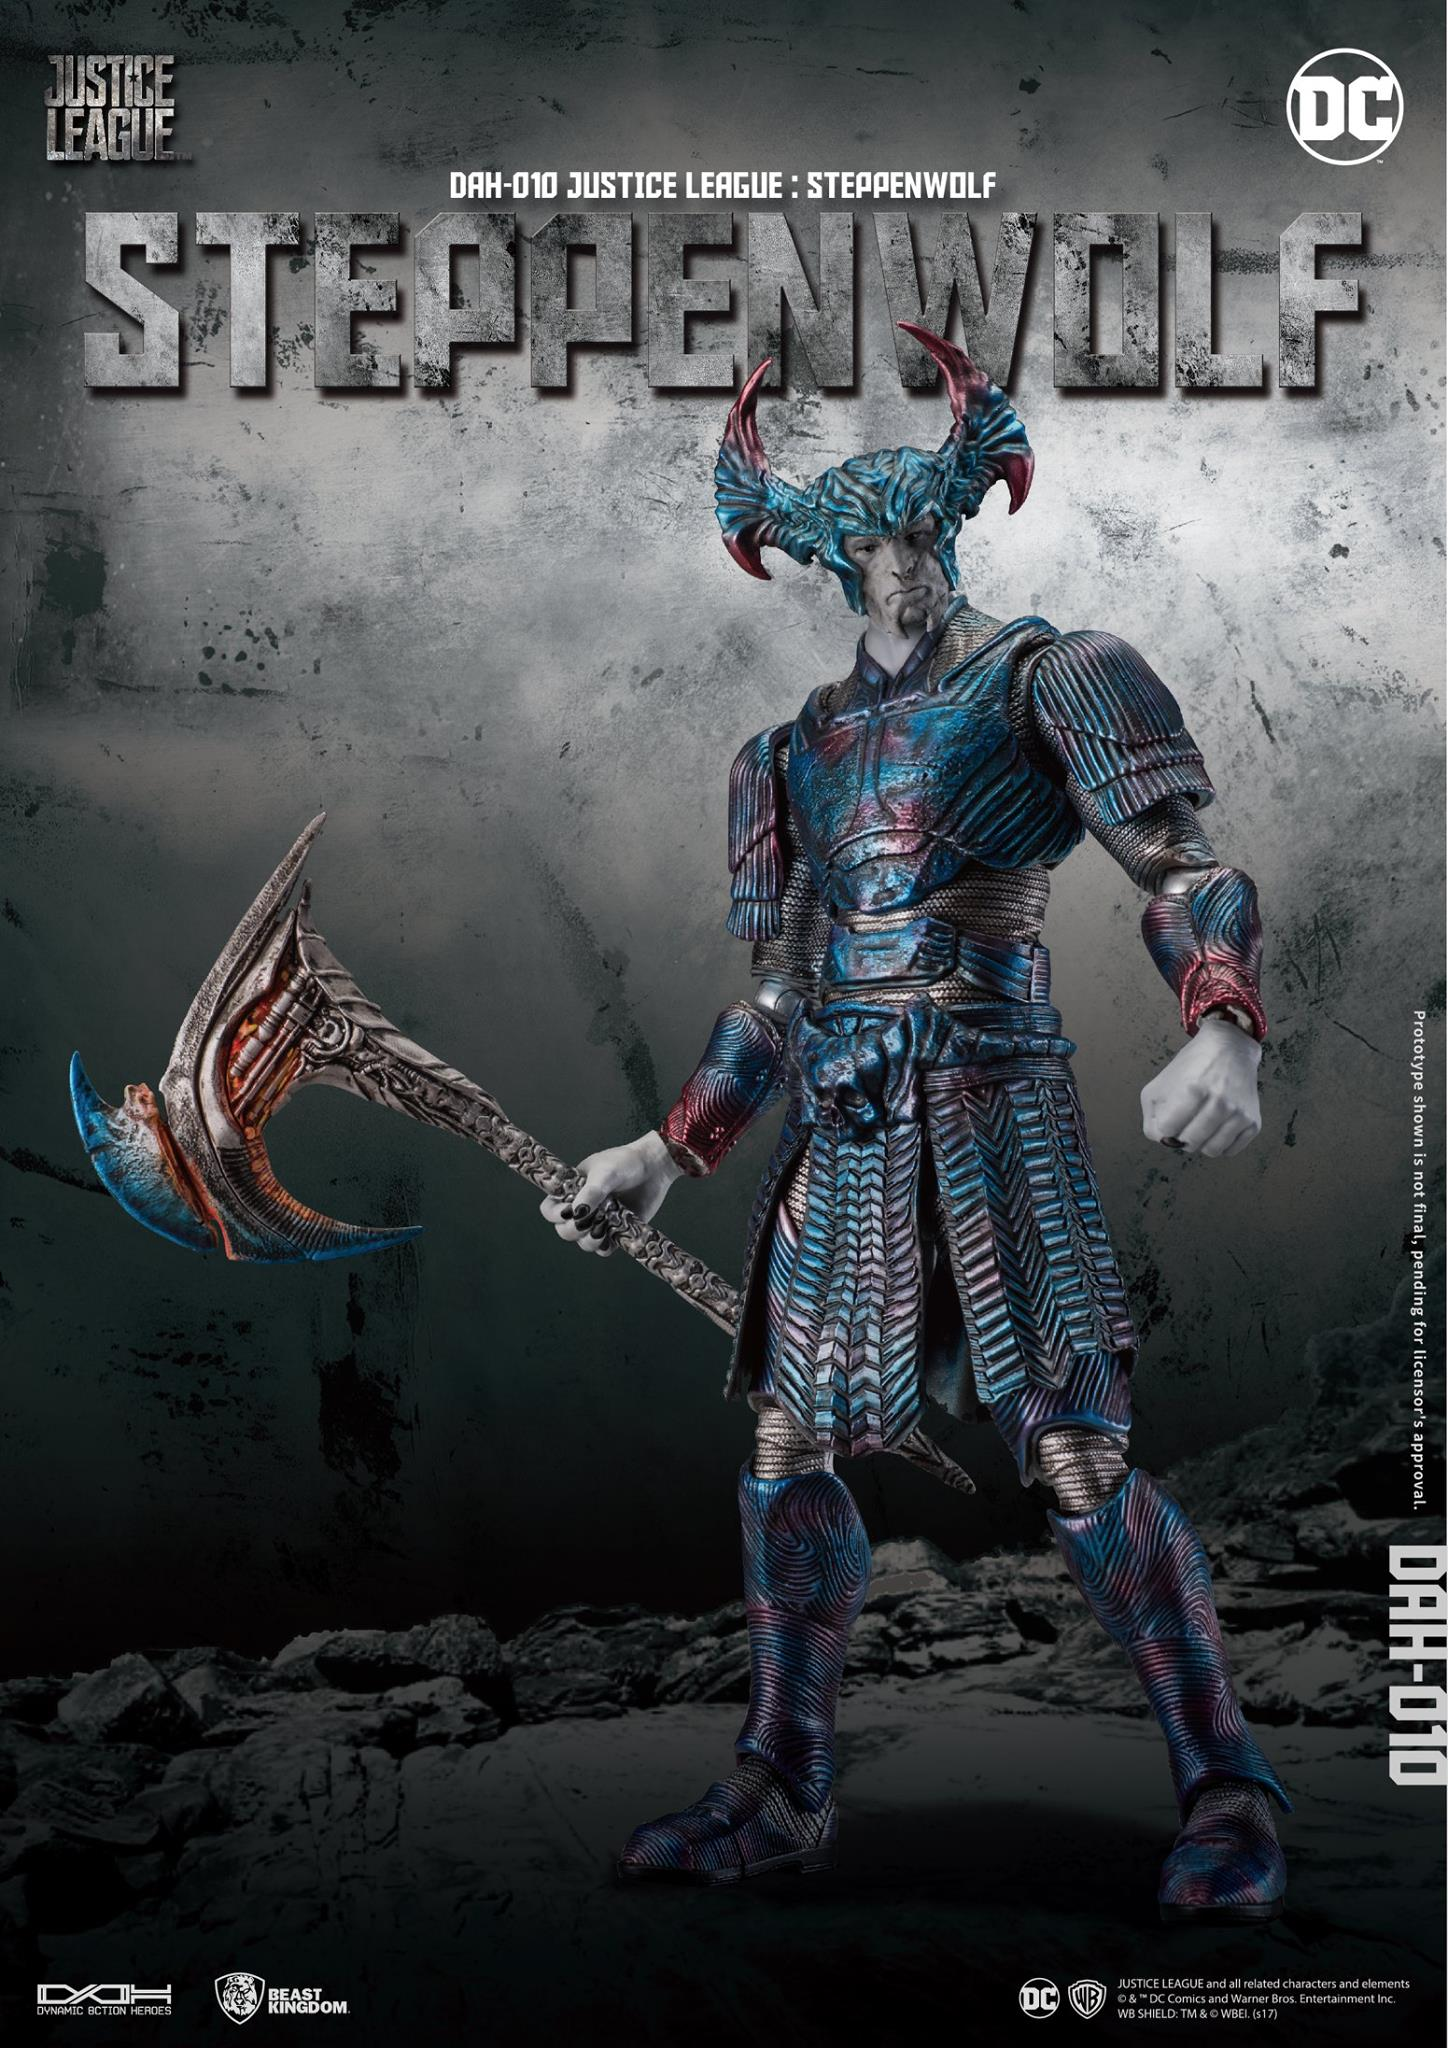 DAH-Justice-League-Steppenwolf-001